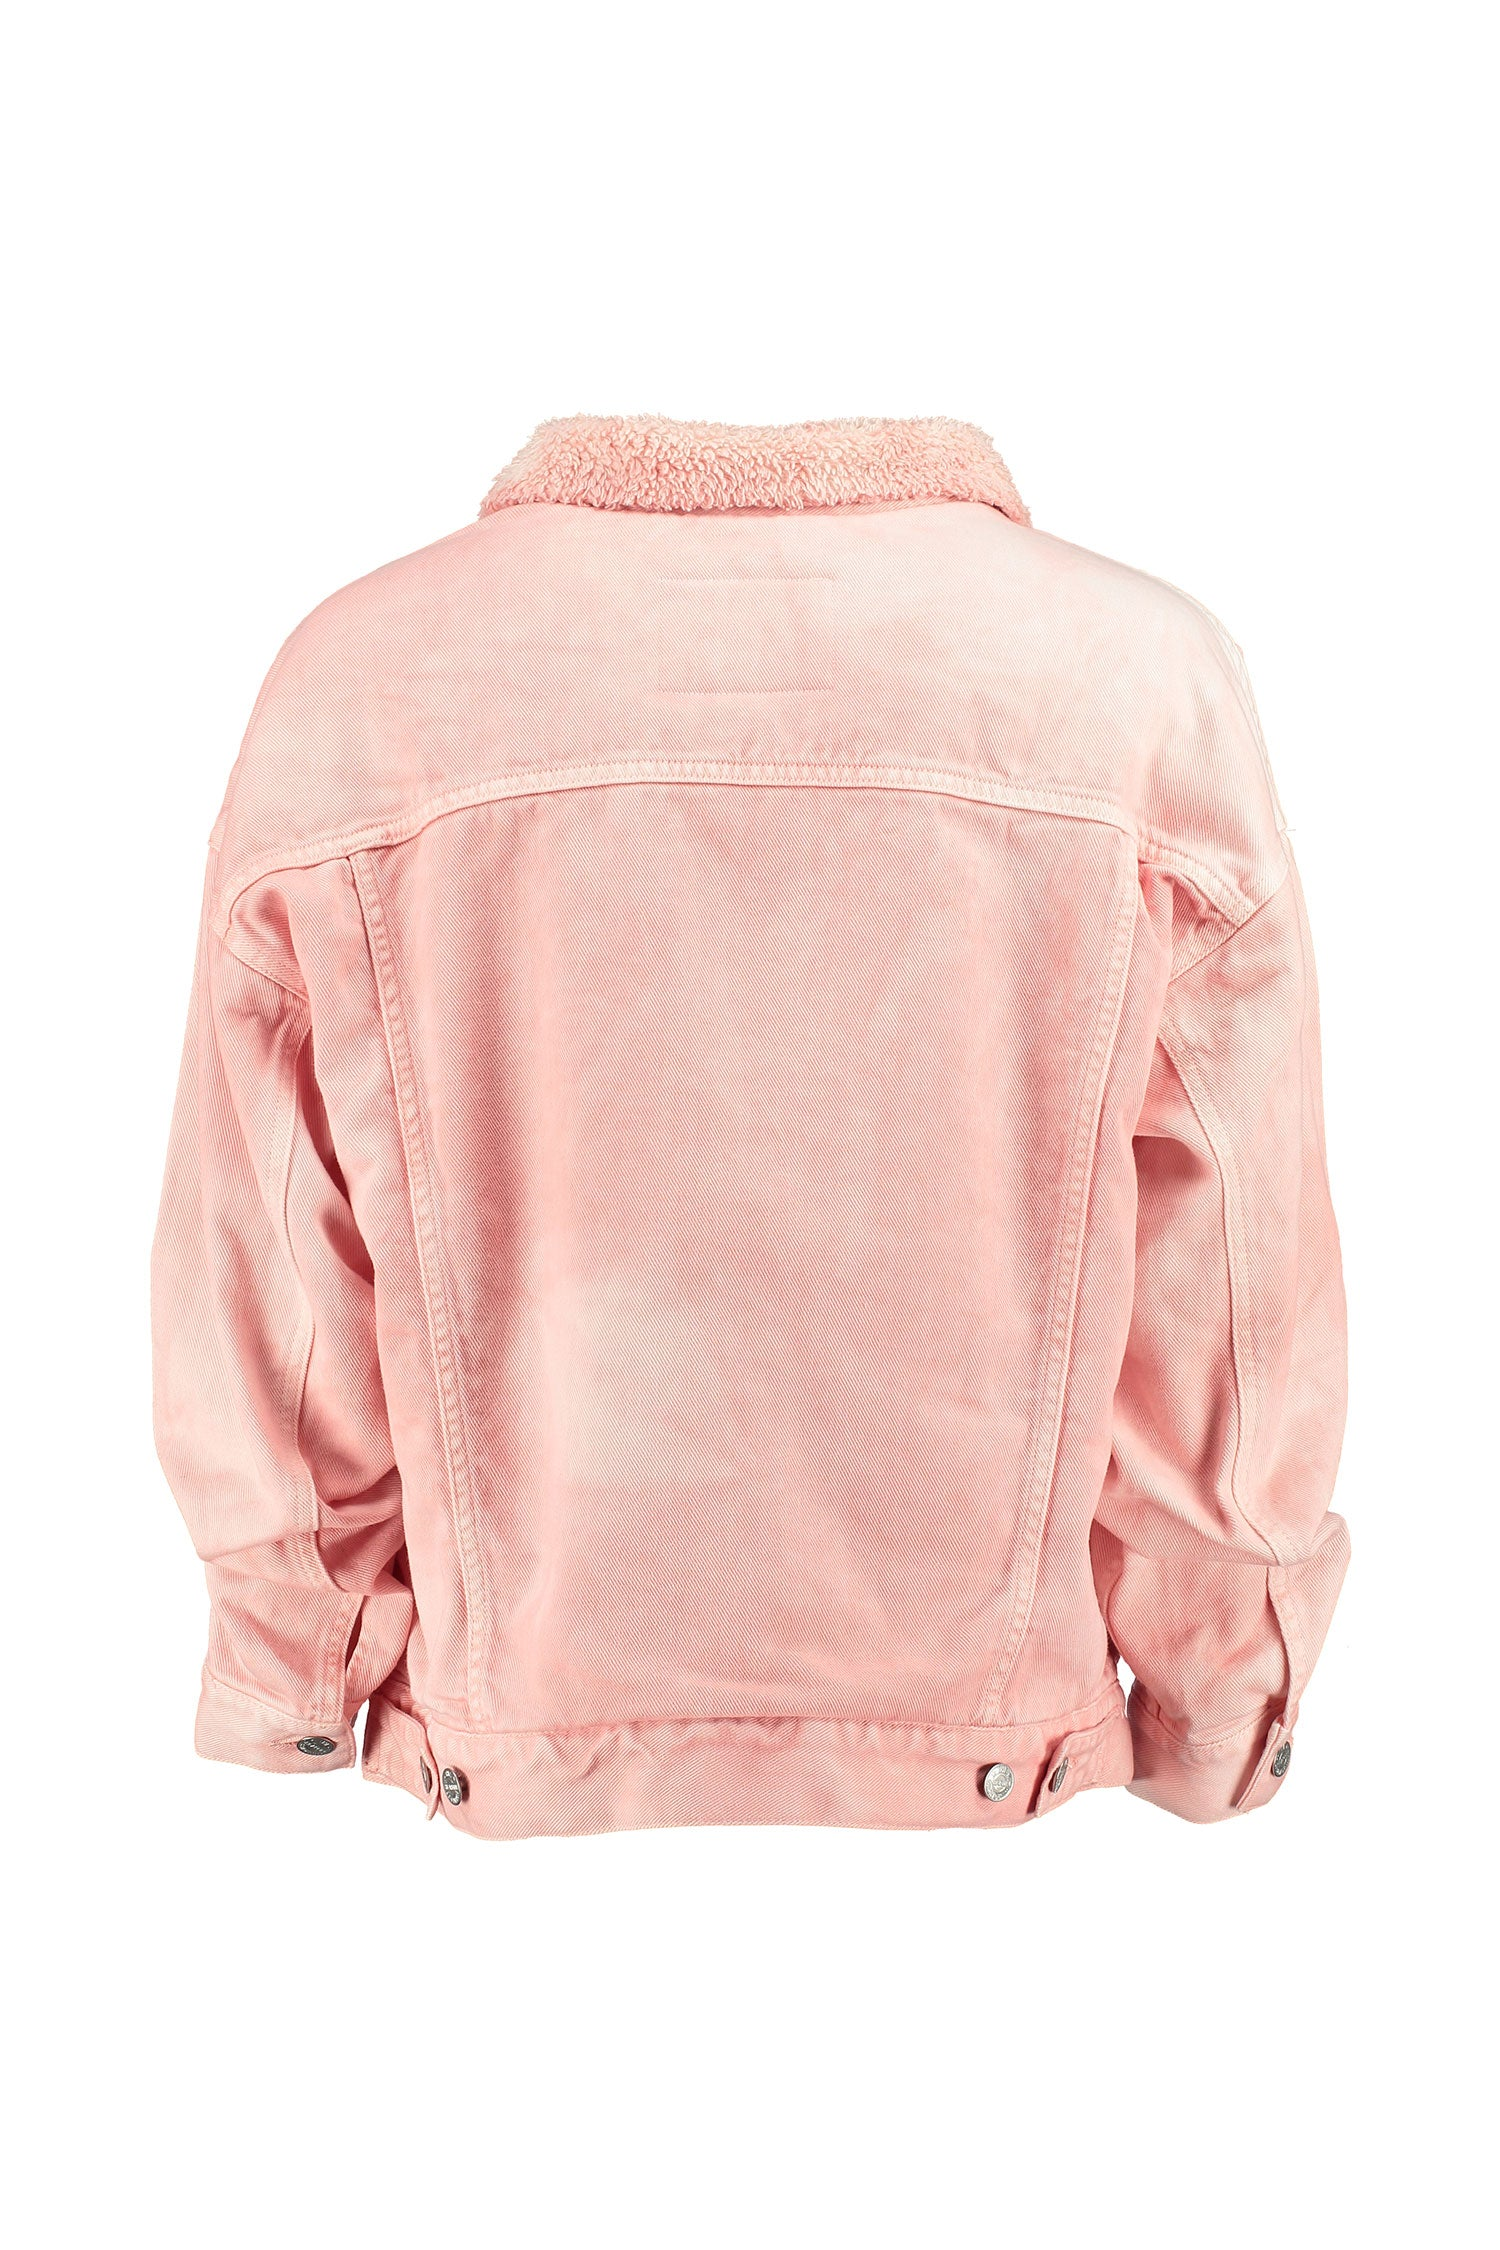 The Shearline Jacket Woman Pink Acid Wash